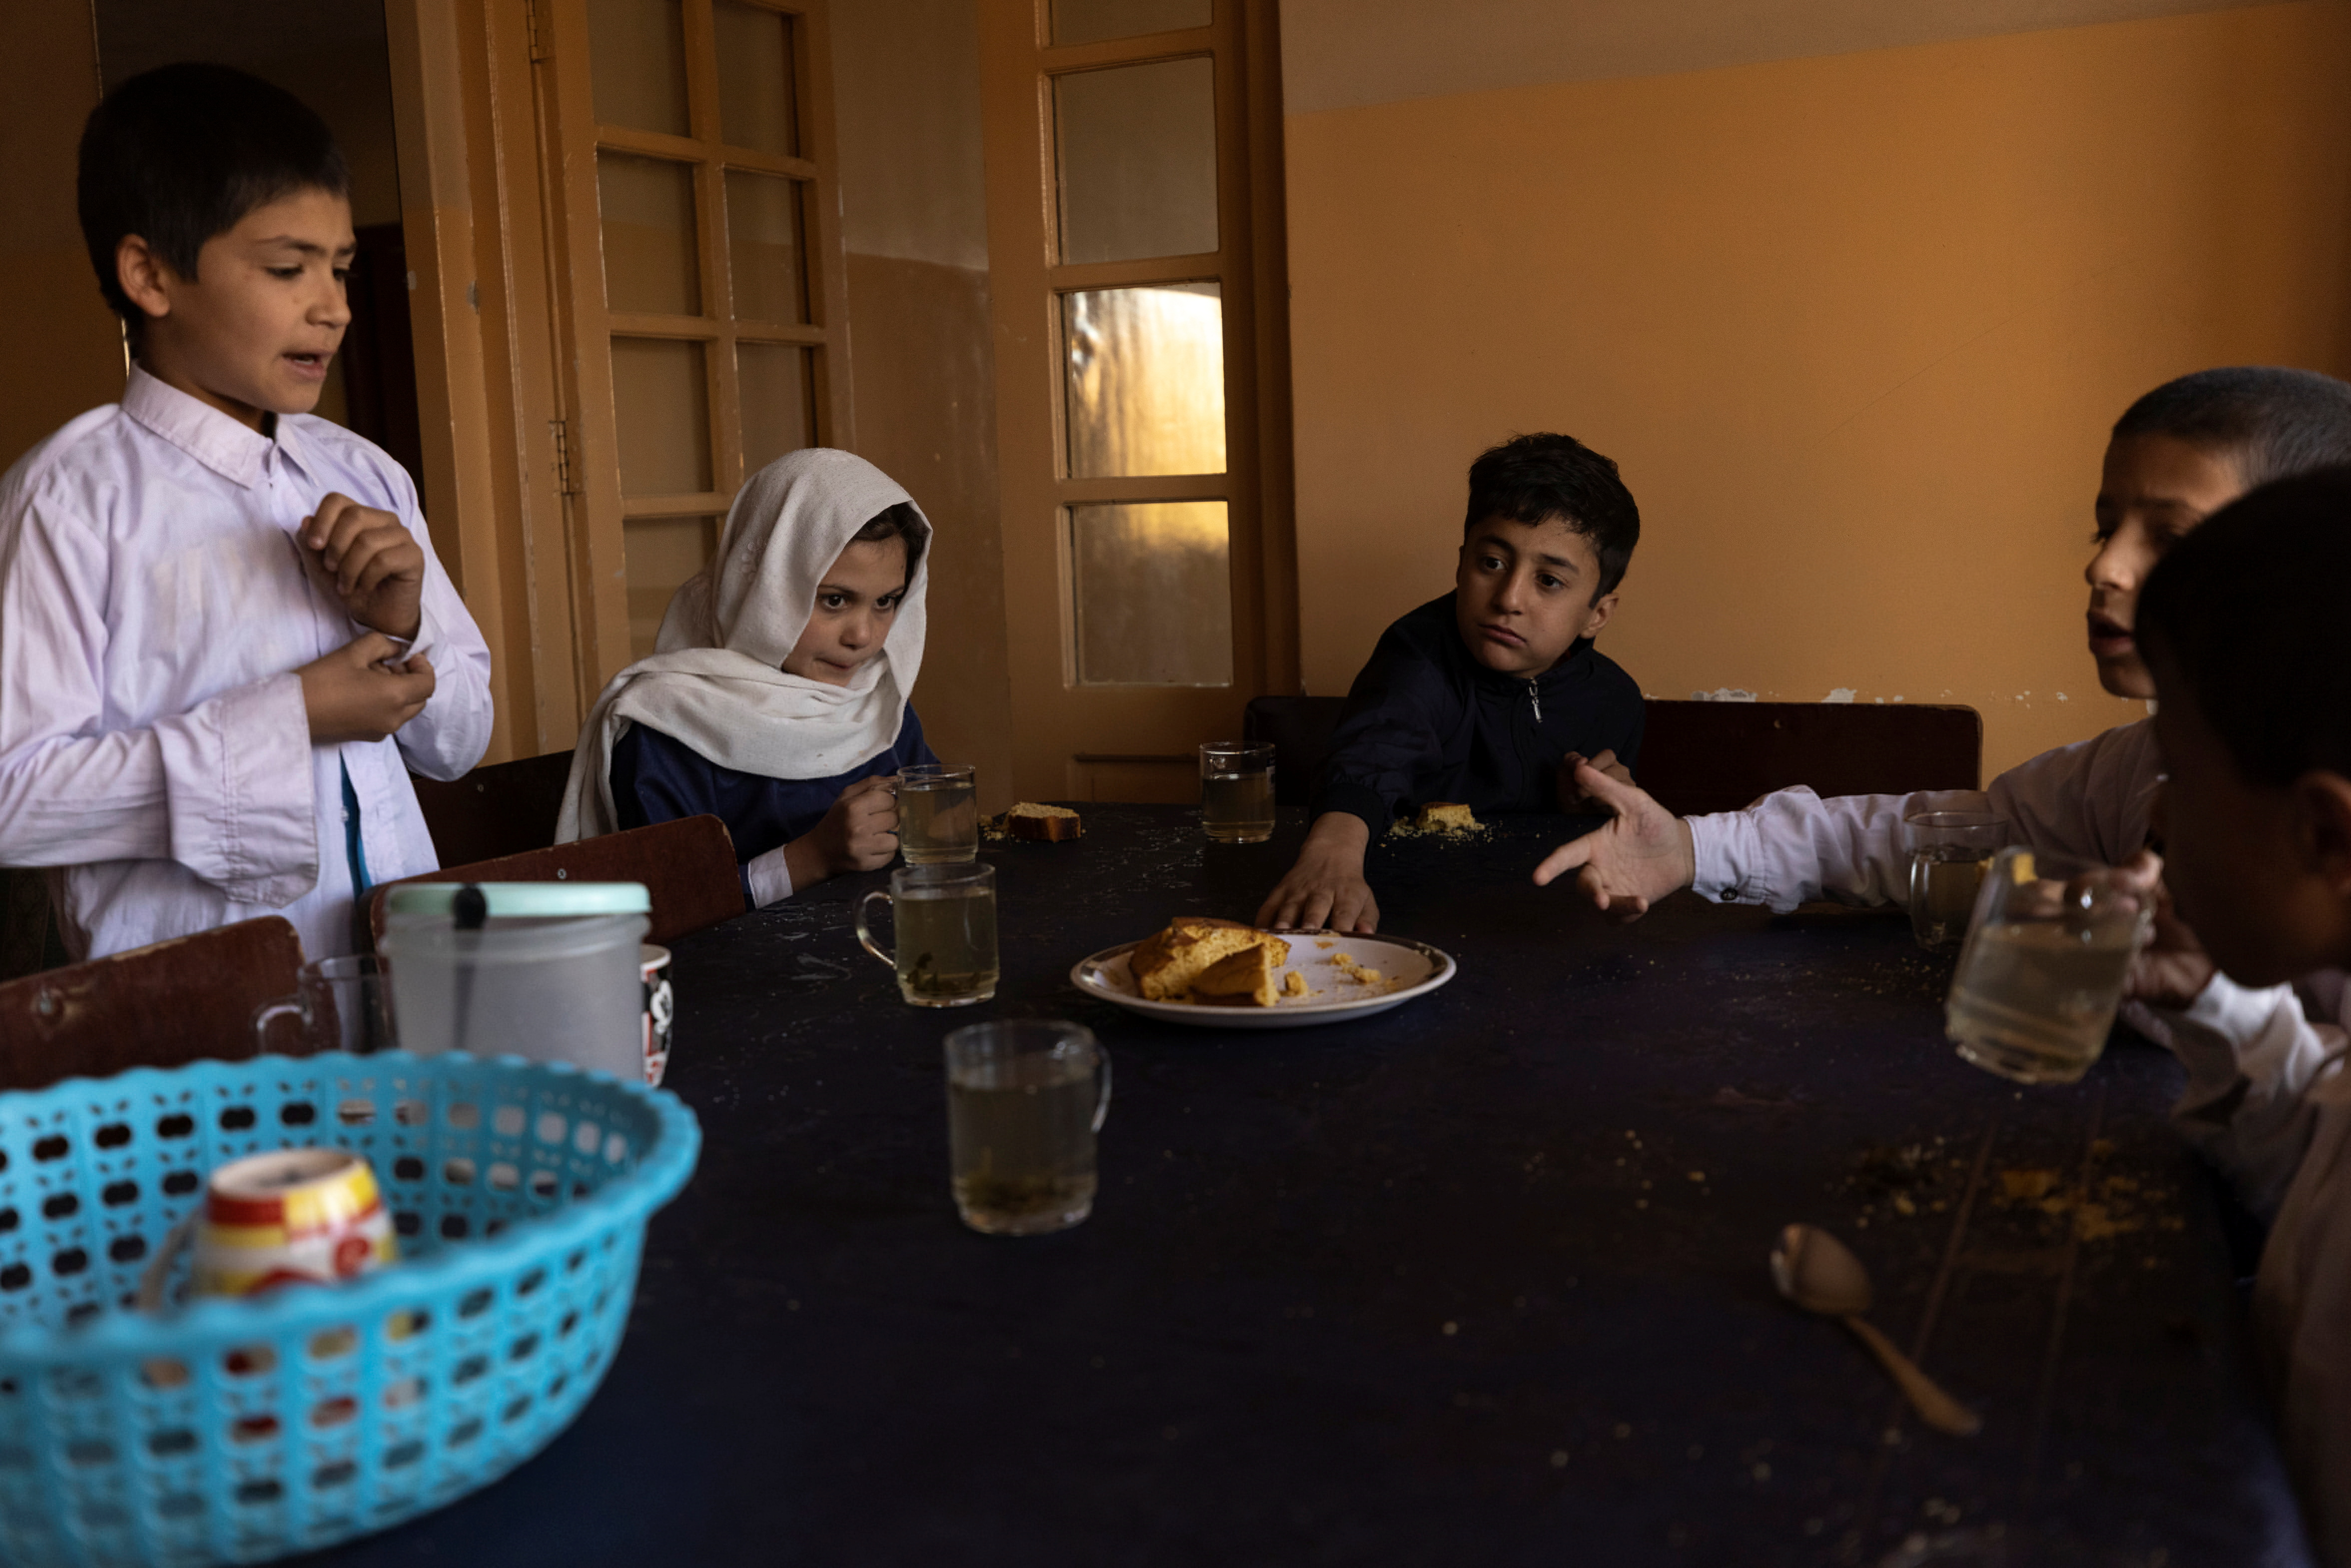 Samira, 9, and other children share tea and bread for breakfast at the orphanage before going to school in Kabul, Afghanistan, October 12, 2021. Samira wants to be a doctor when she grows up.